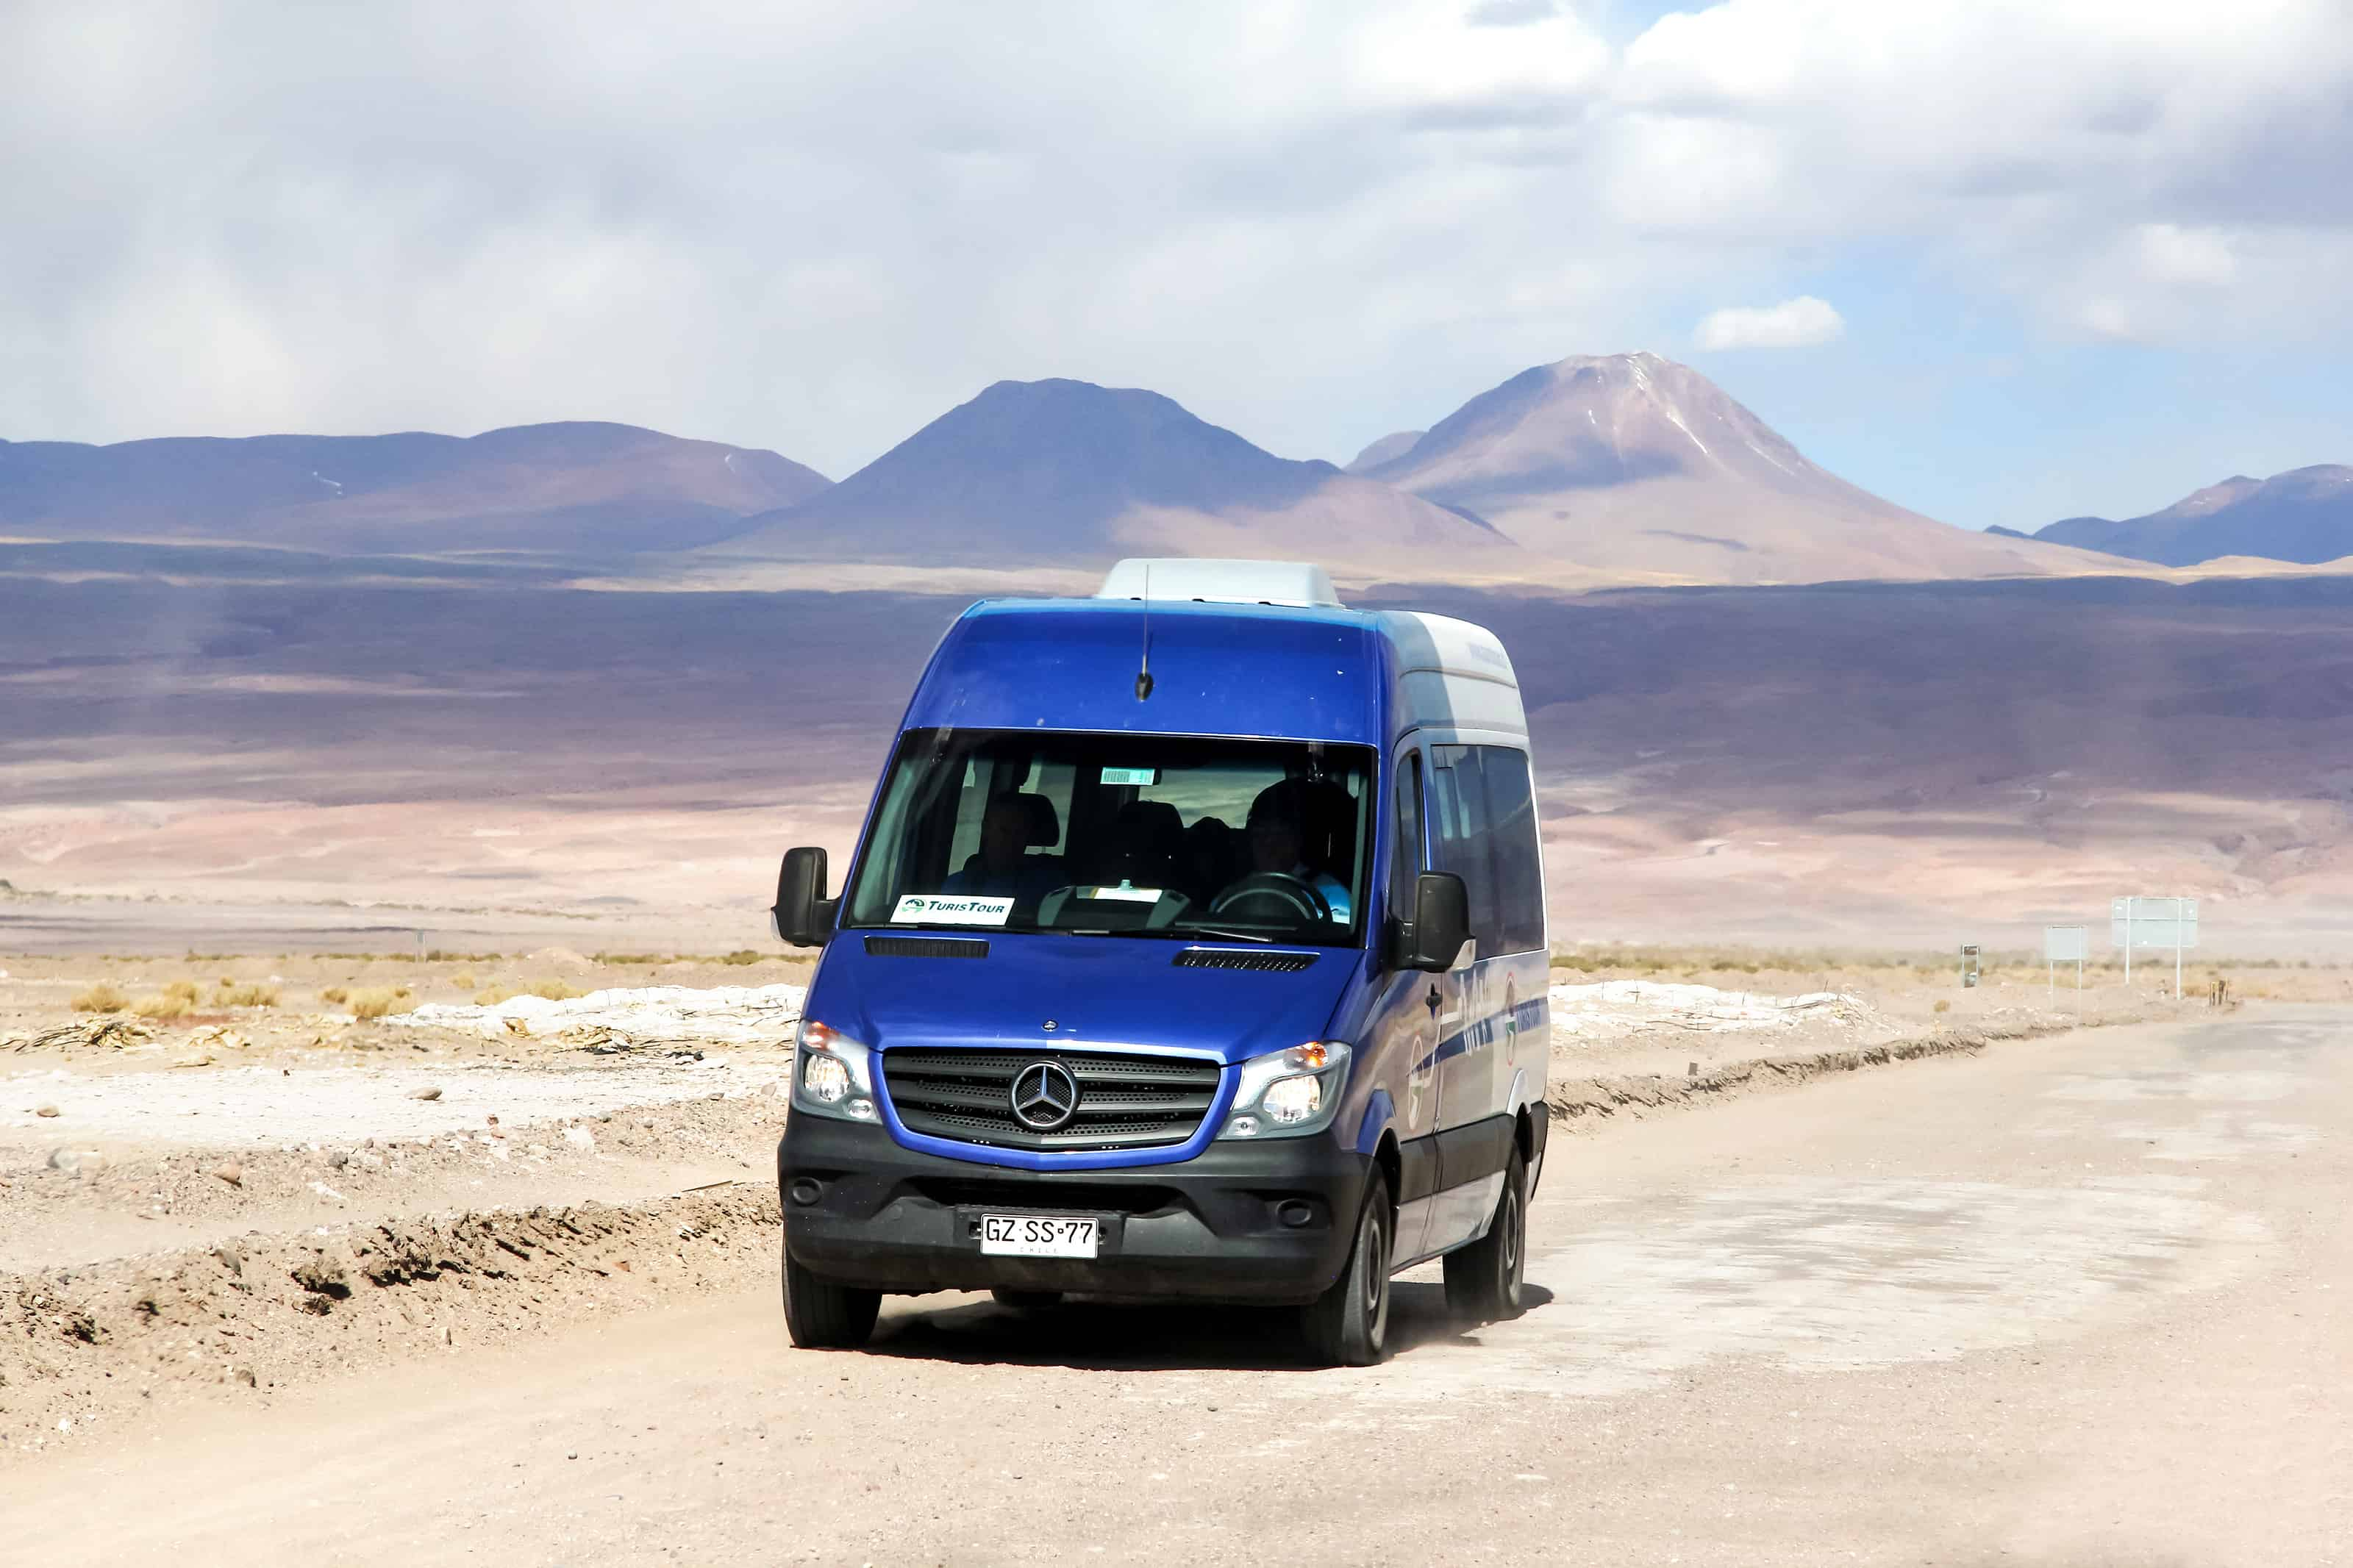 Touristic van Mercedes-Benz Sprinter at the intercity gravel road through the Atacama desert.